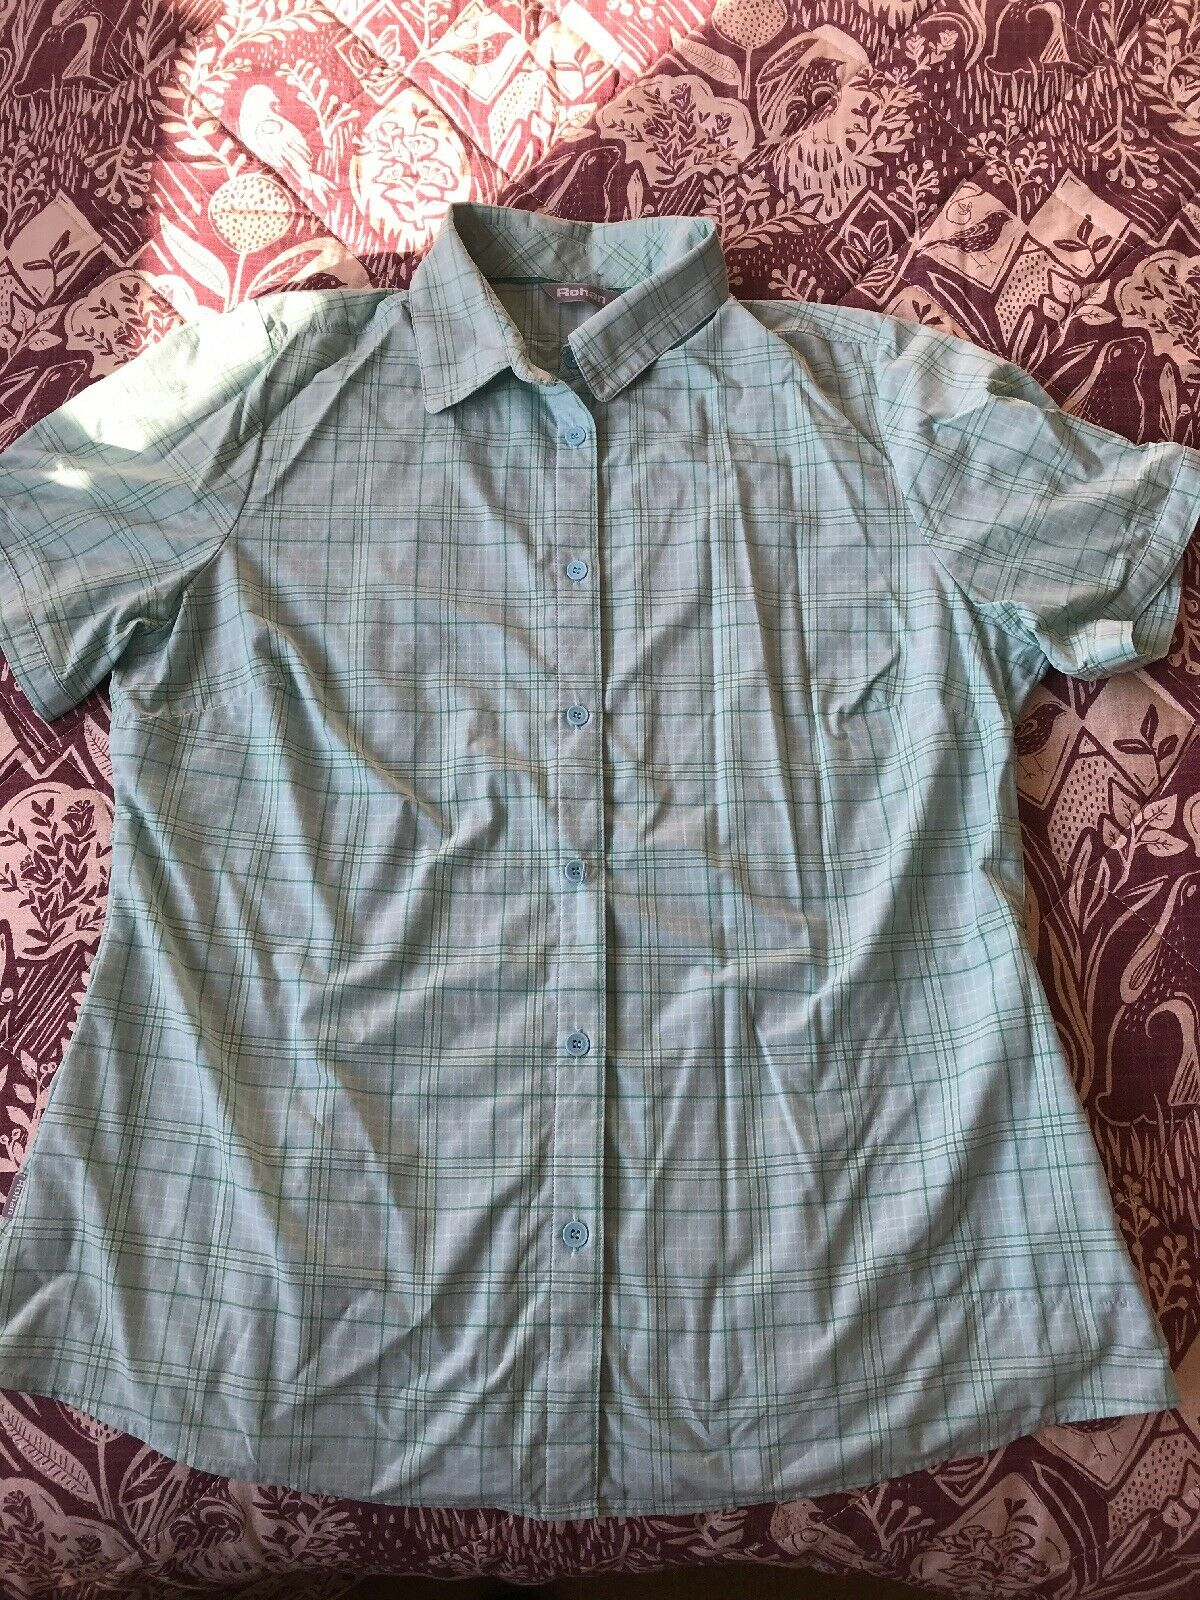 Rohan ladies leeway shirt size 16 Excellent Condition